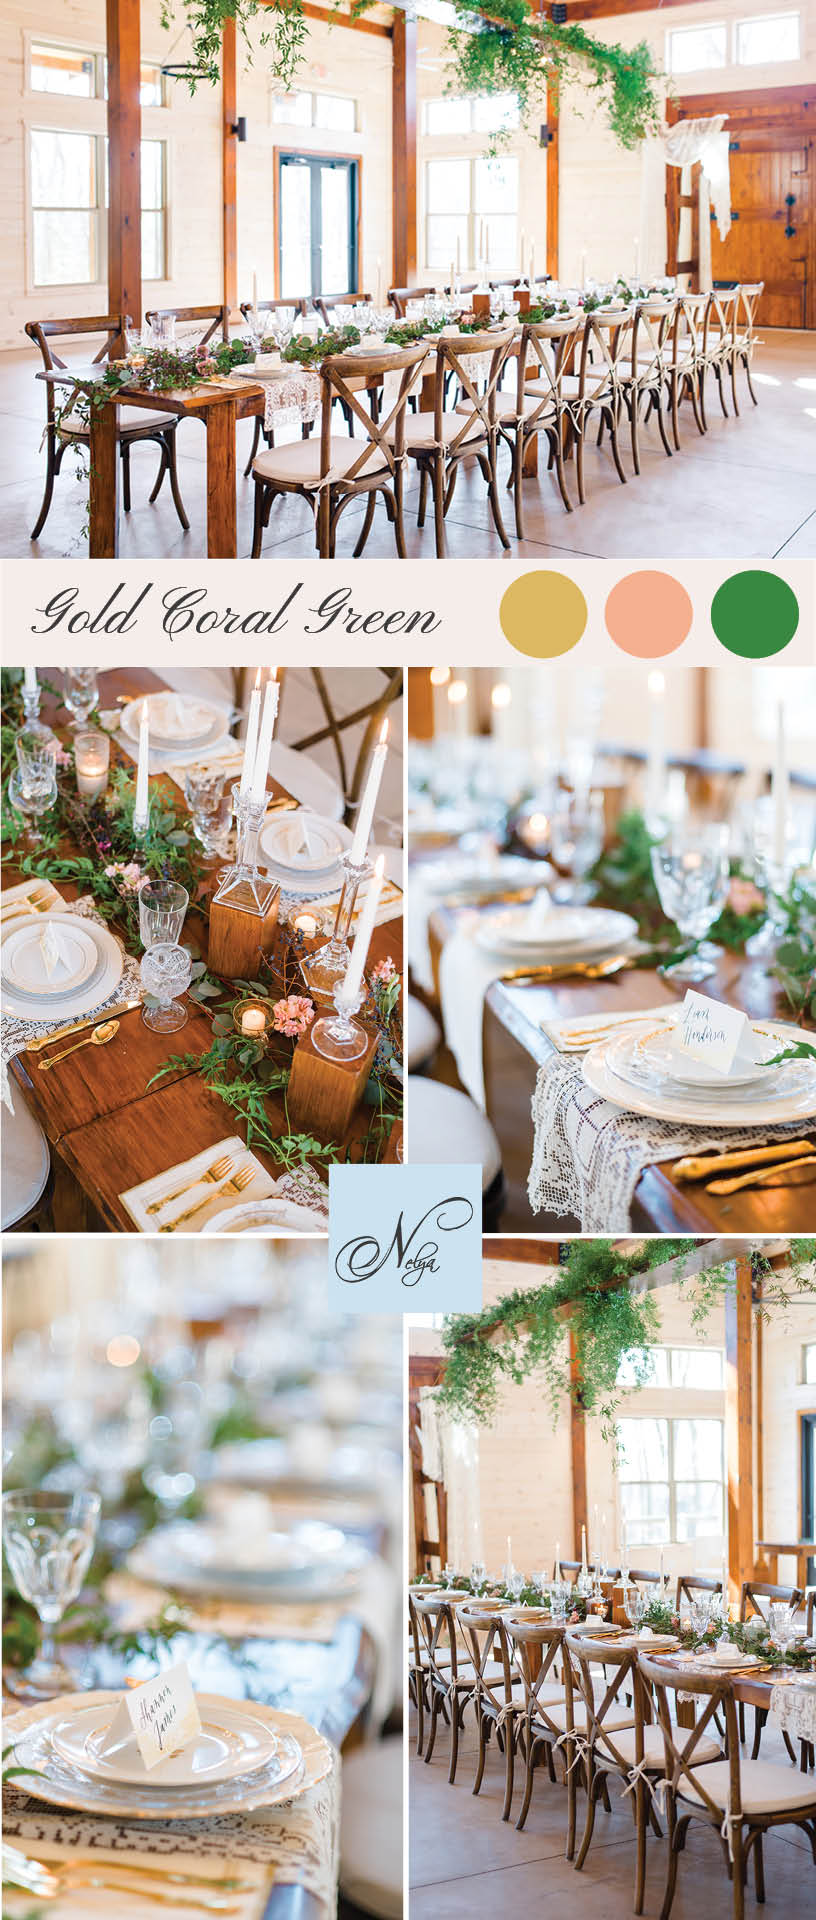 gold, green and coral themed wedding decor at Hiwassee river weddings